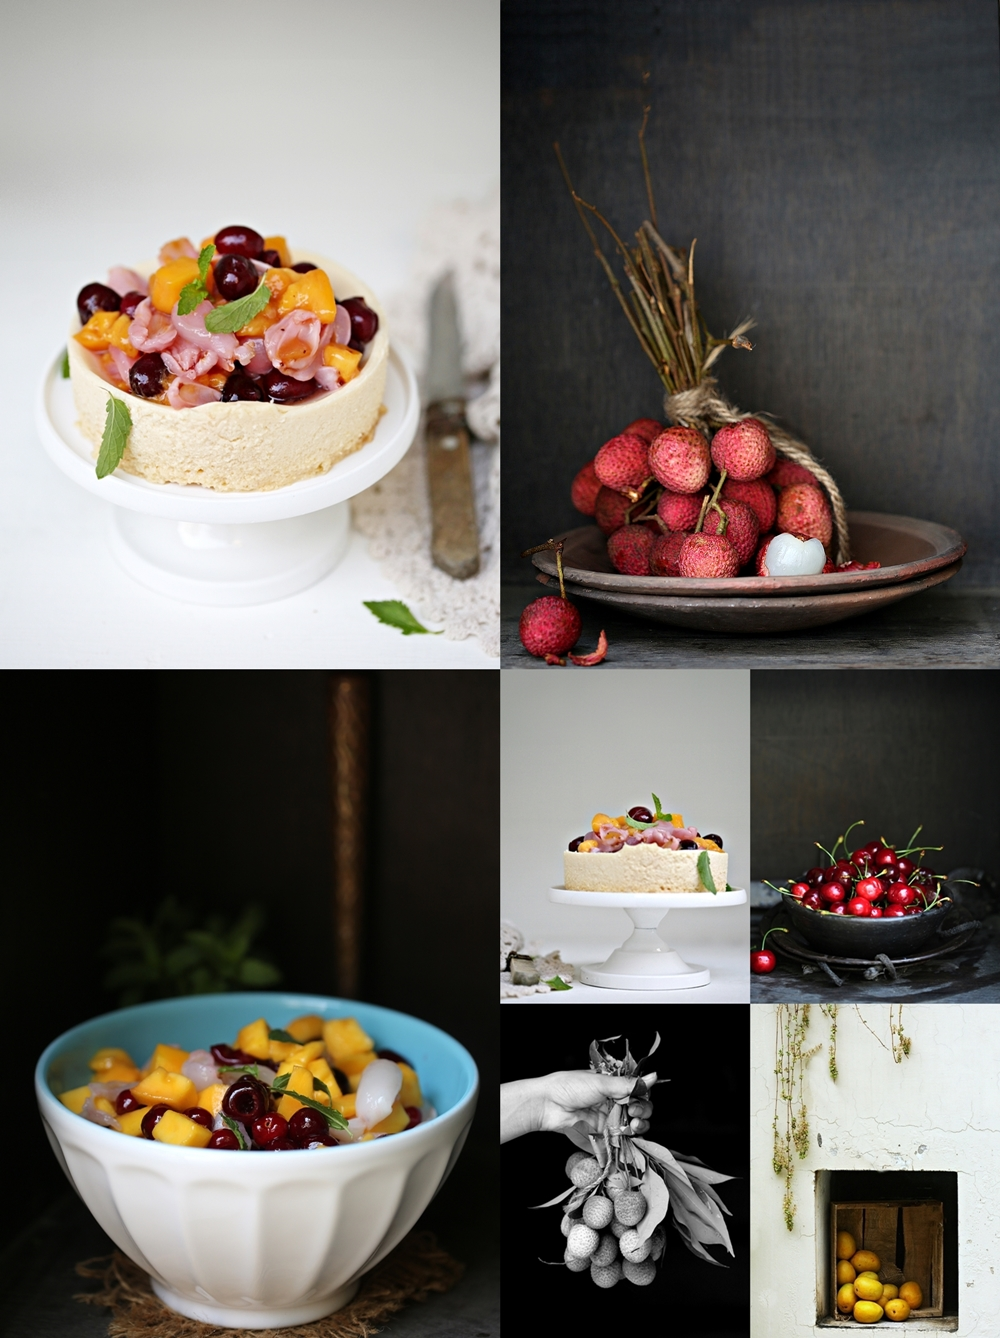 Eggless cheesecake with summer stone fruit